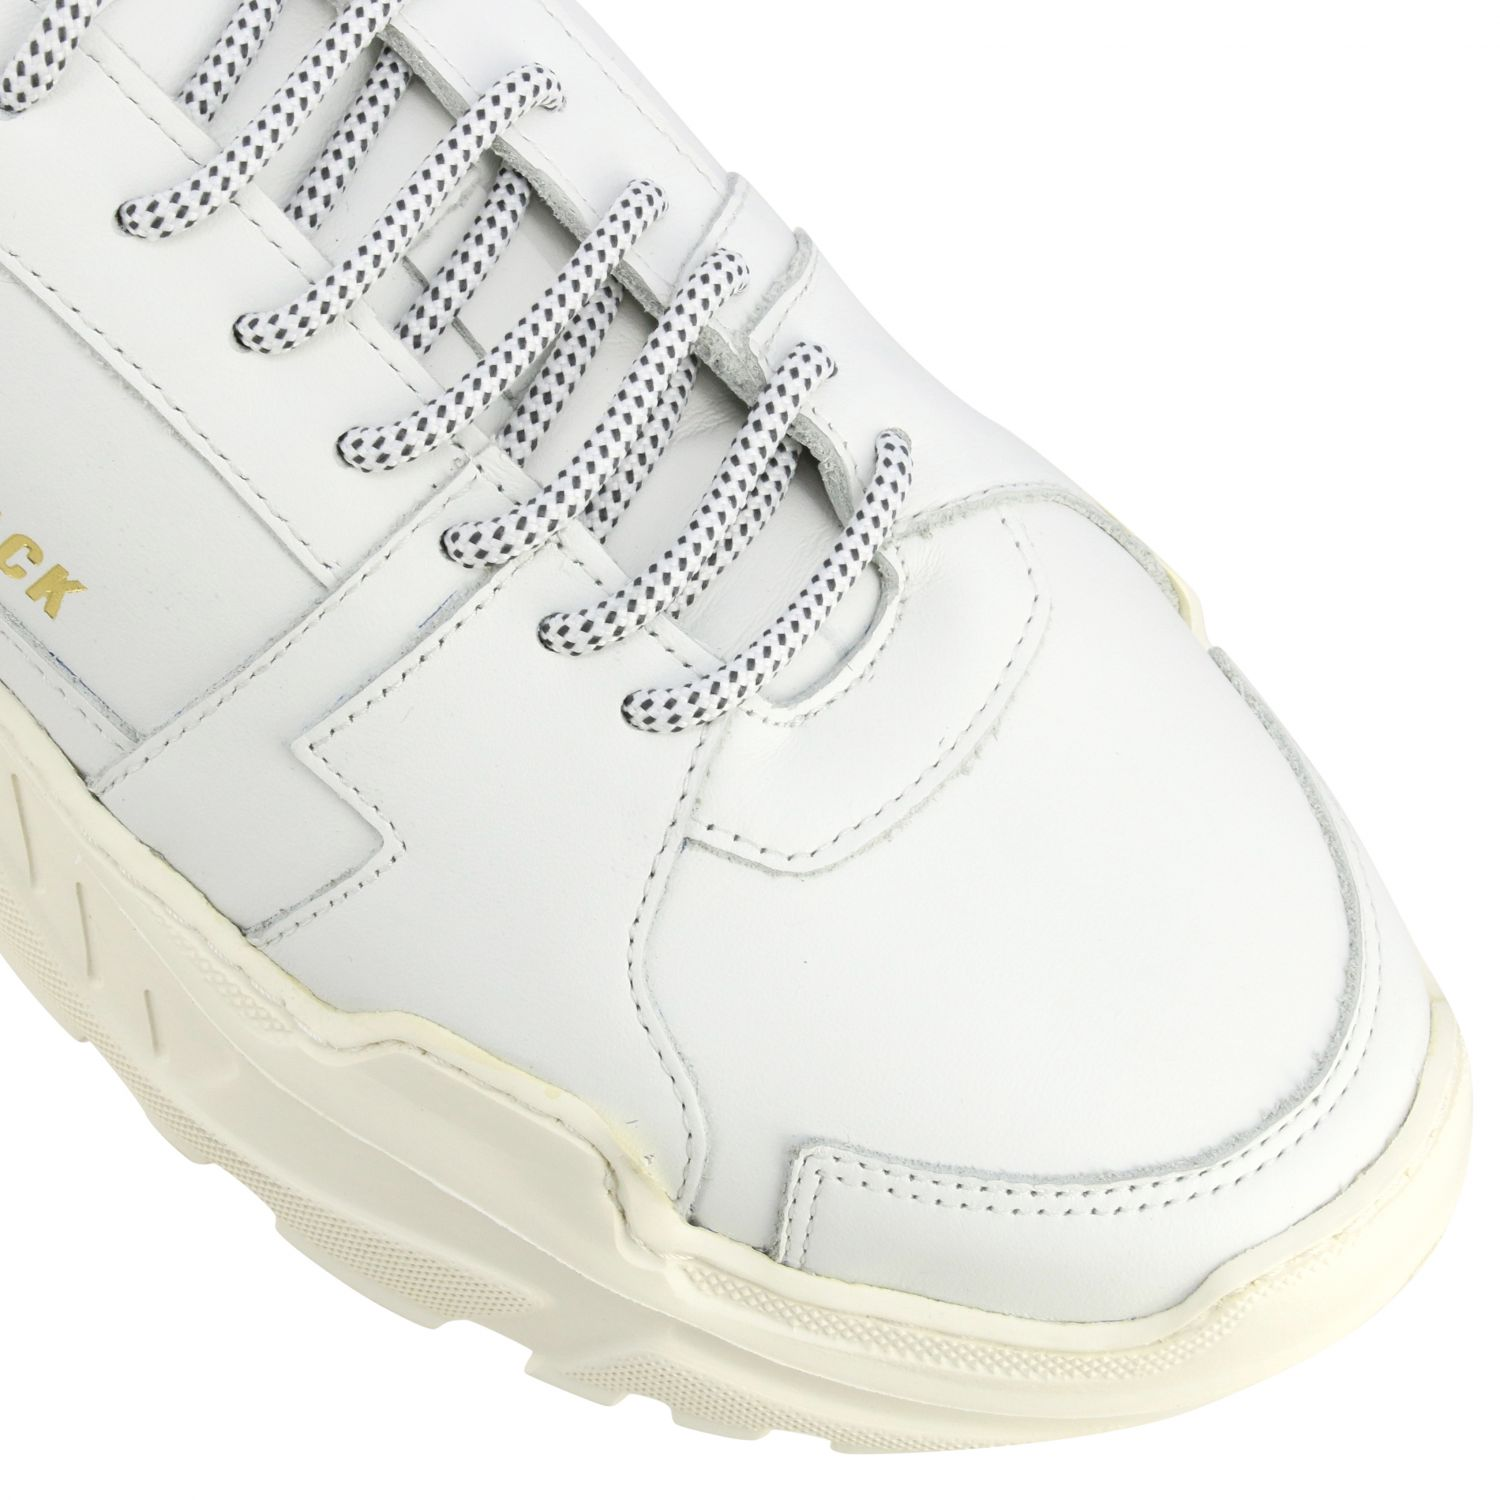 Baskets Hide & Jack: Chaussures homme Hide & Jack blanc 4